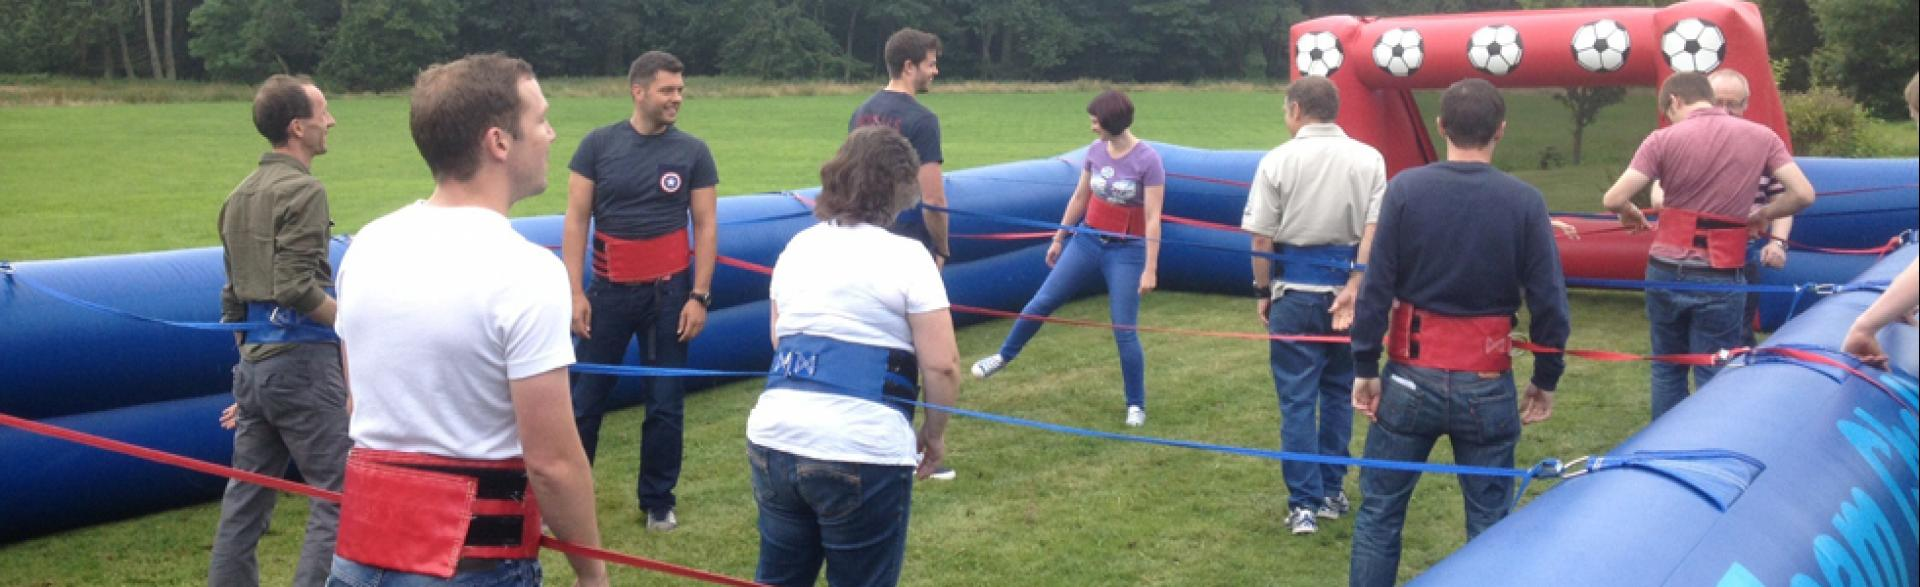 Corporate Family Fun Days, Aberdeen, August 2014